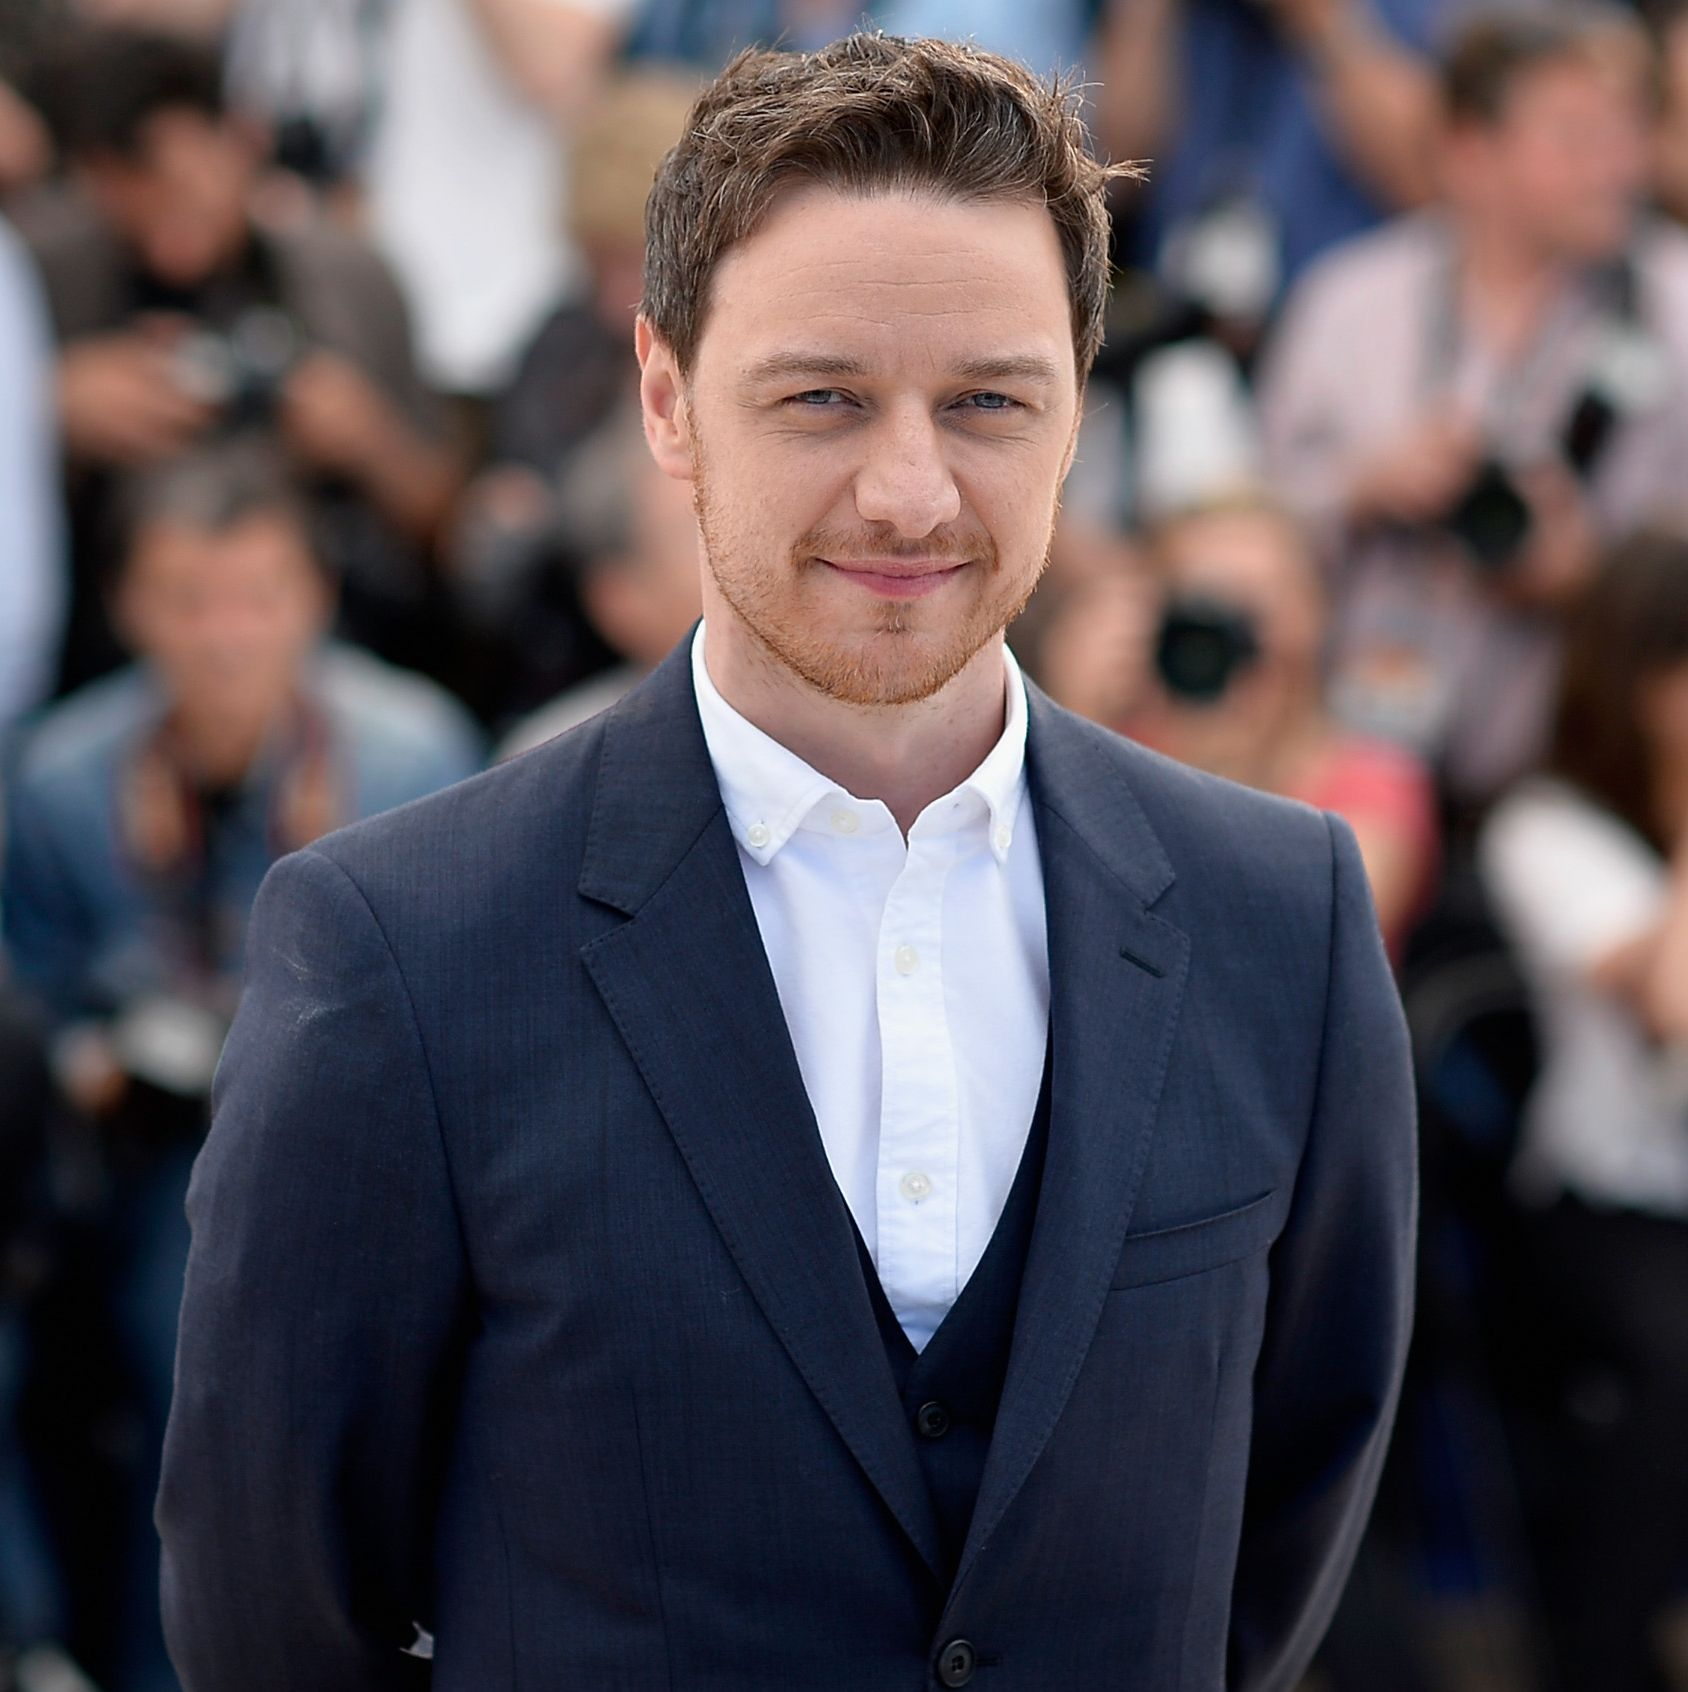 James McAvoy on the Awkwardest Sex Scene He's Ever Had to Film